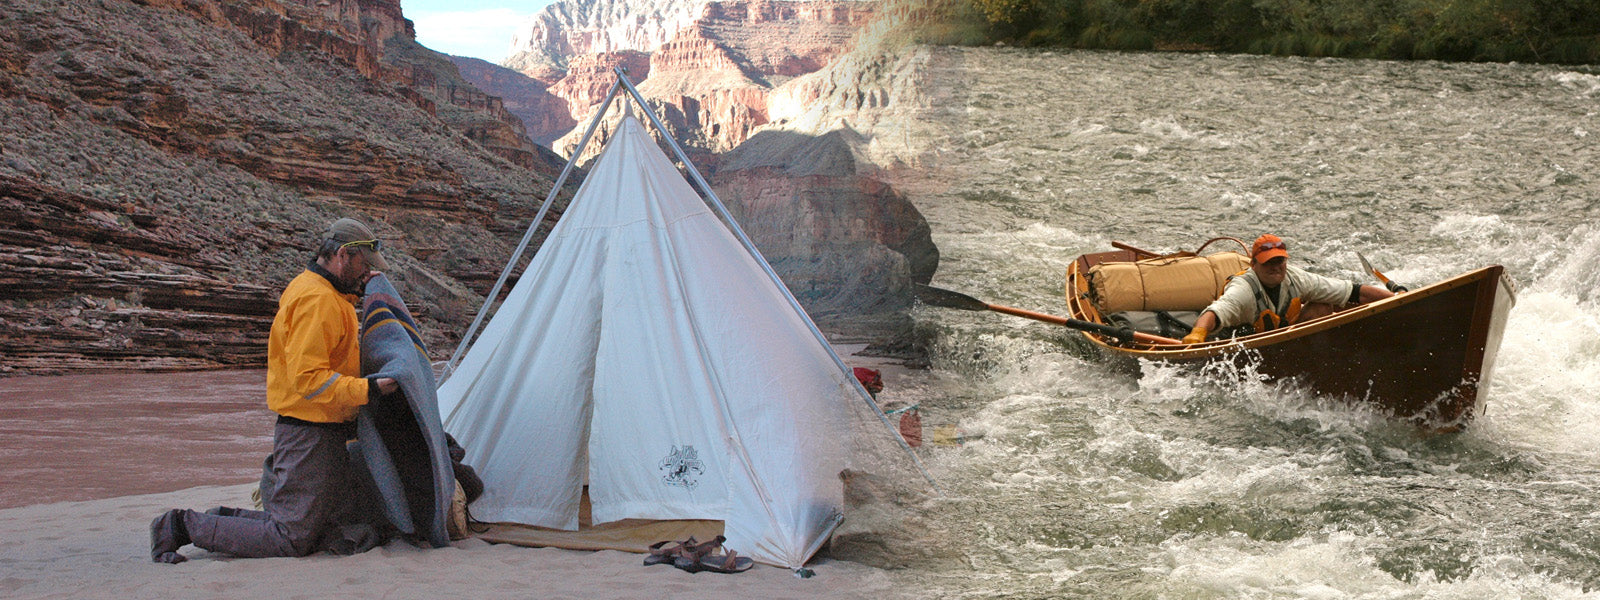 range tent and bedroll in the wild